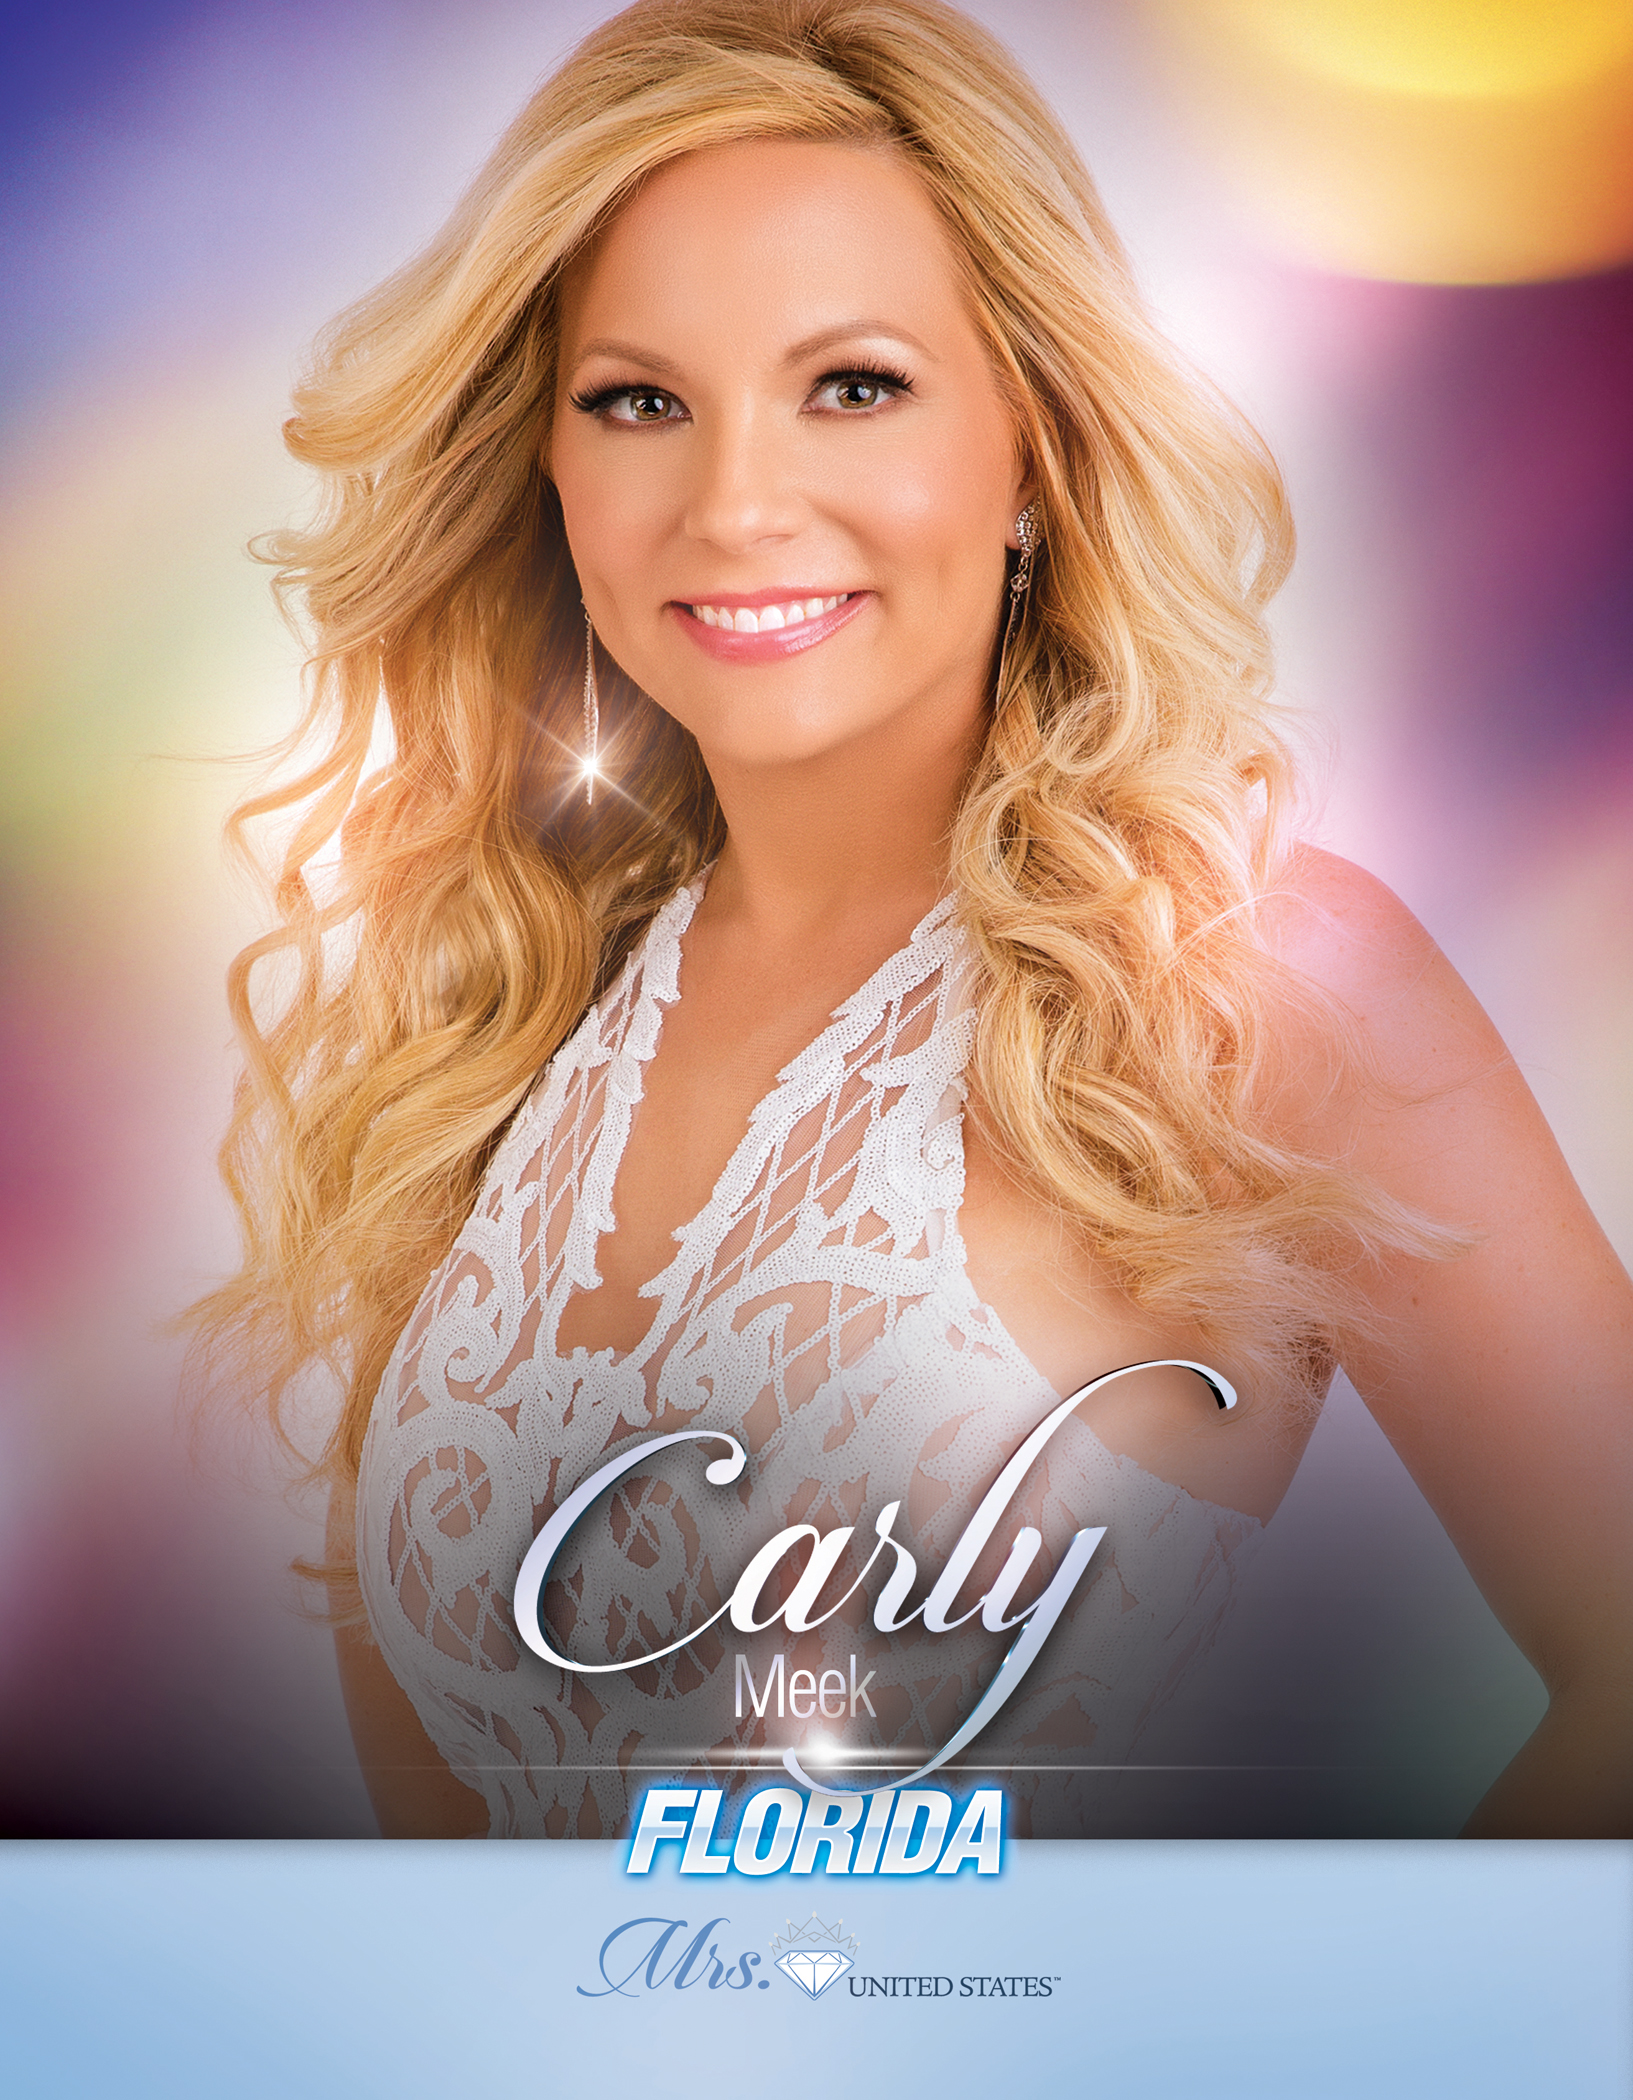 Carly Meek Mrs. Florida United States - 2019